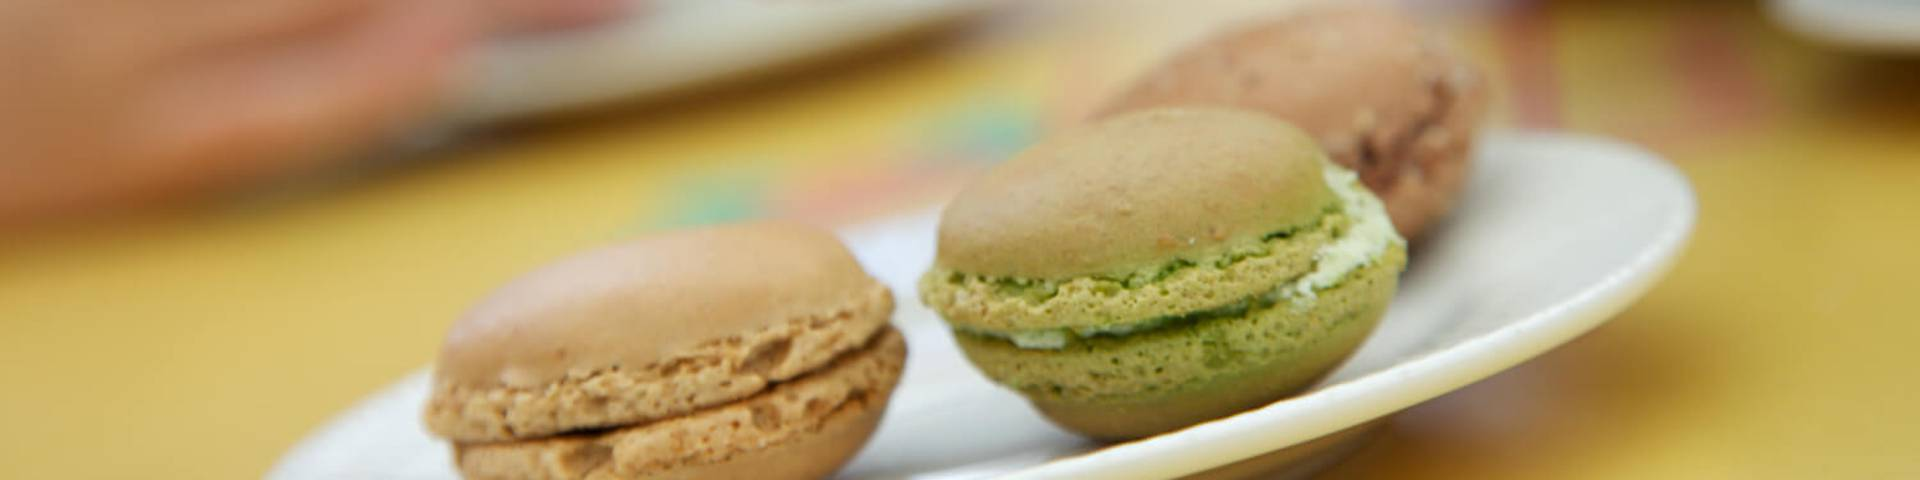 Macaroon tasting for elevenses